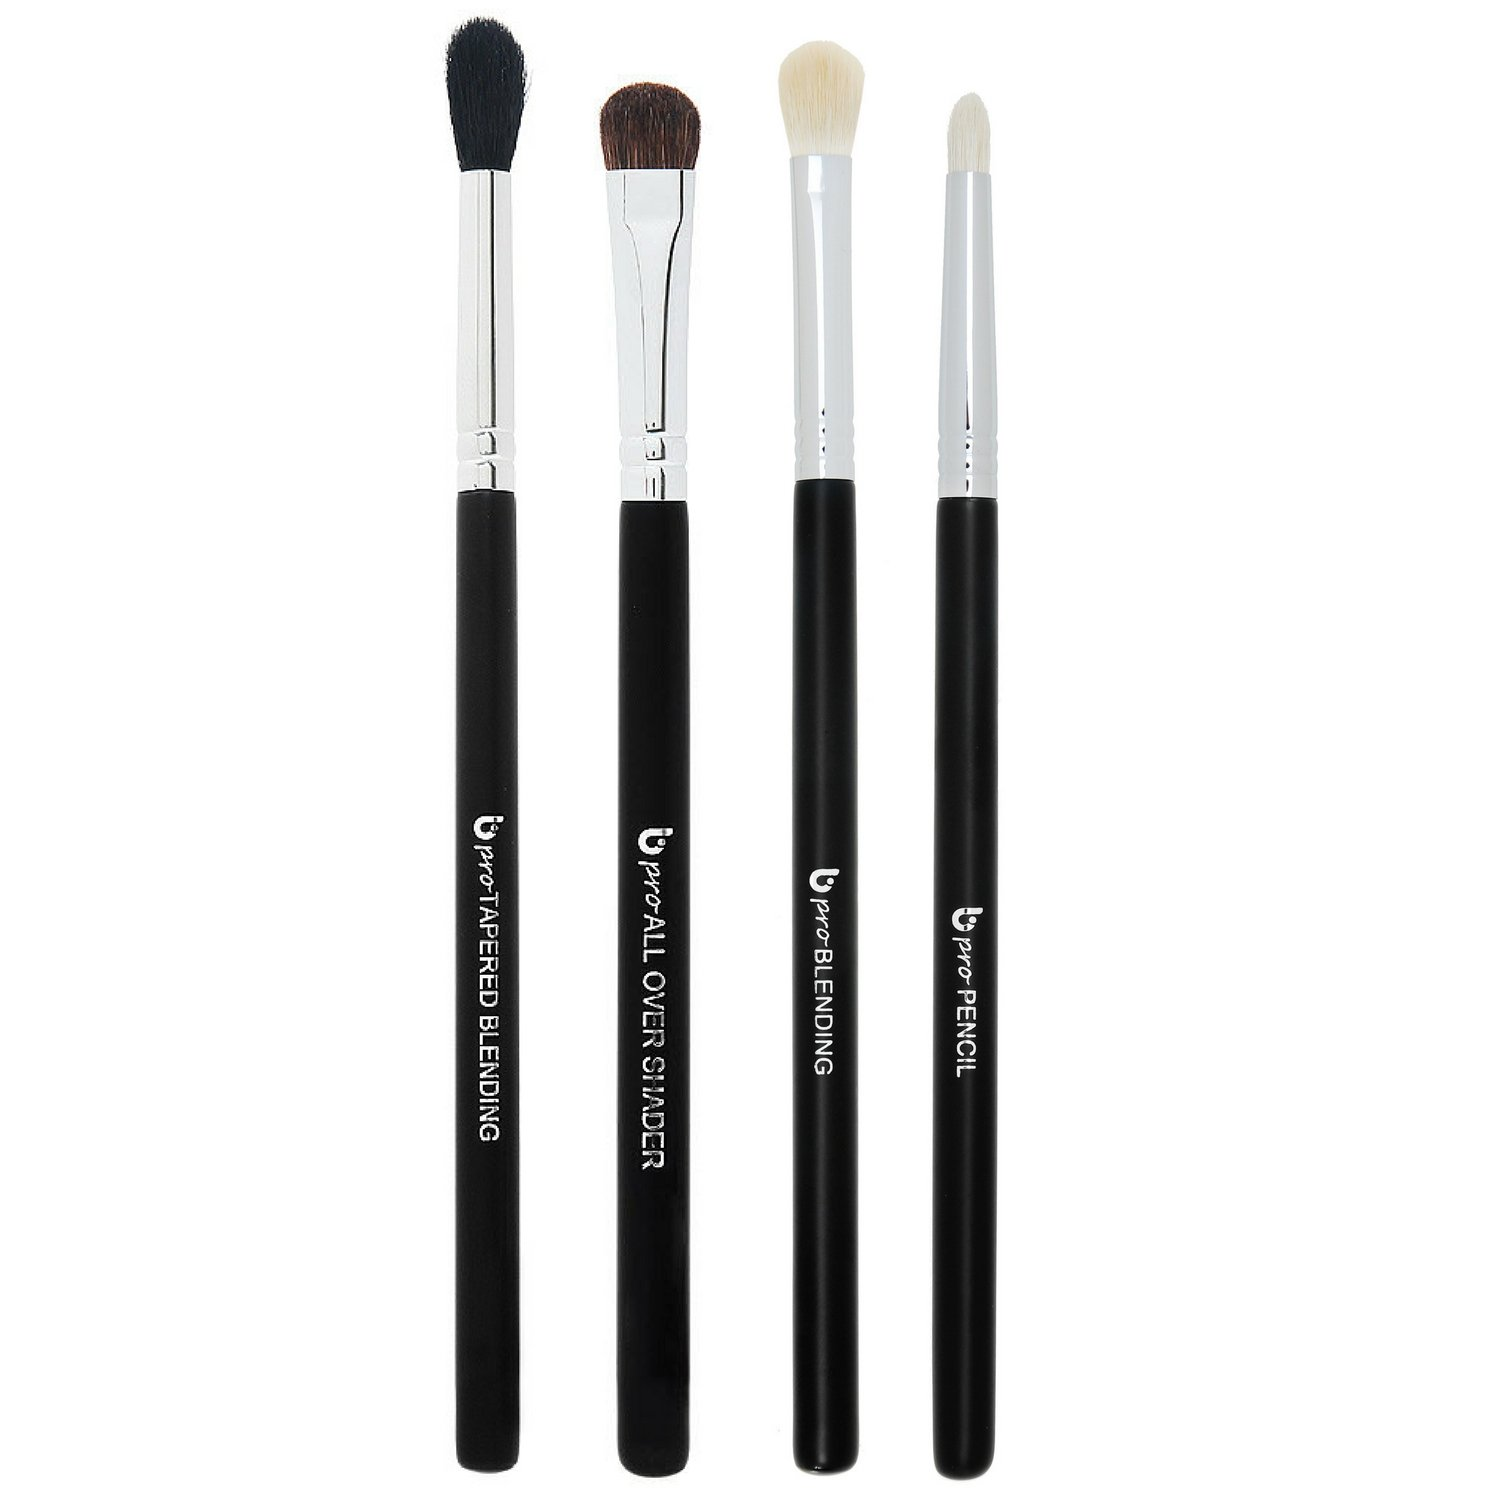 Basic Eye Makeup Brushes Includes 4 Must Have Eyeshadow Brush Set: Pencil, Tapered Blending, All Over Shader, Blending